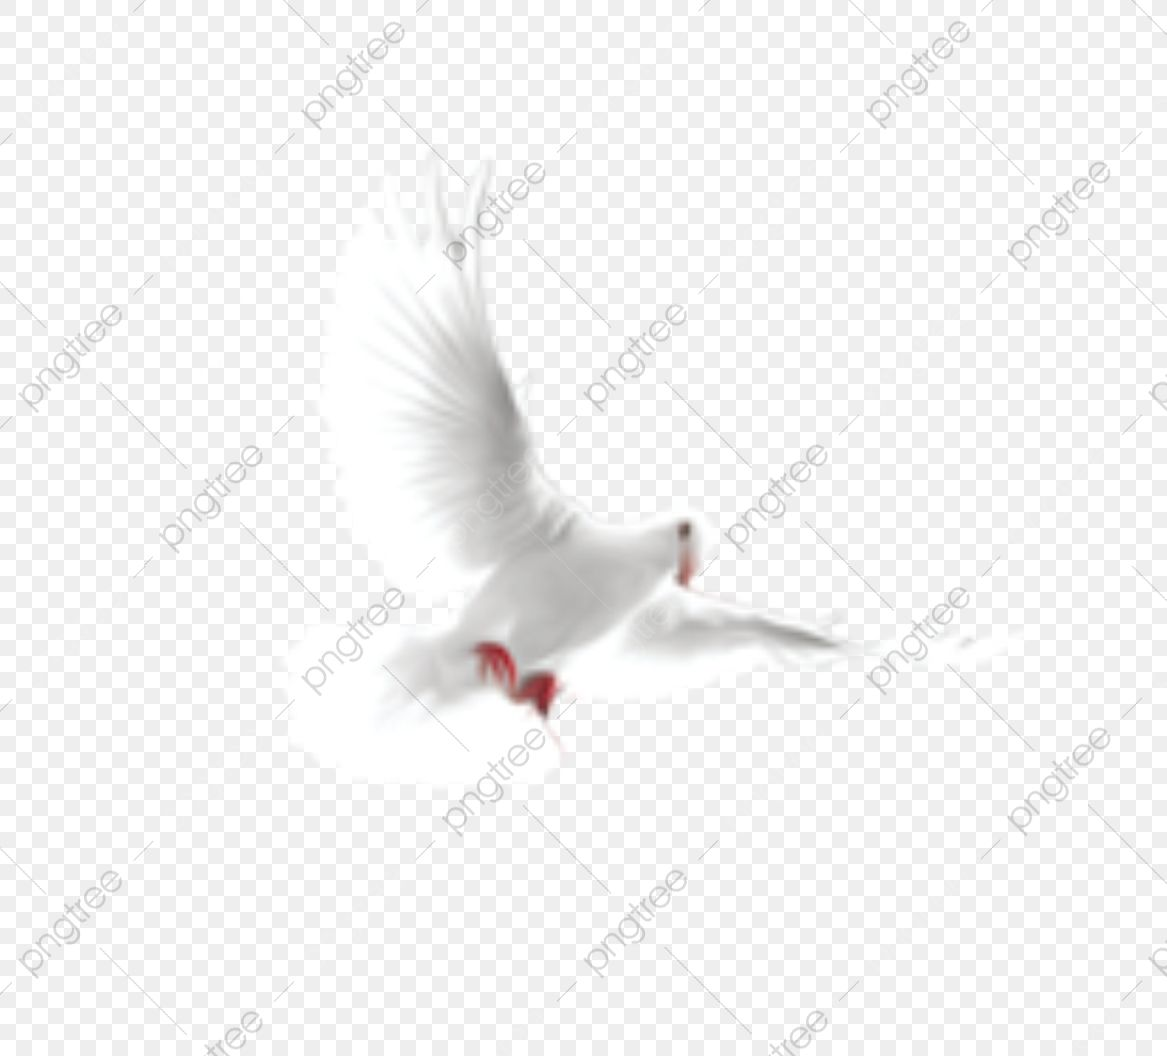 Flying White Pigeon Flying White Dove Dove Of Peace Png Transparent Clipart Image And Psd File For Free Download White Doves White Pigeon Clip Art